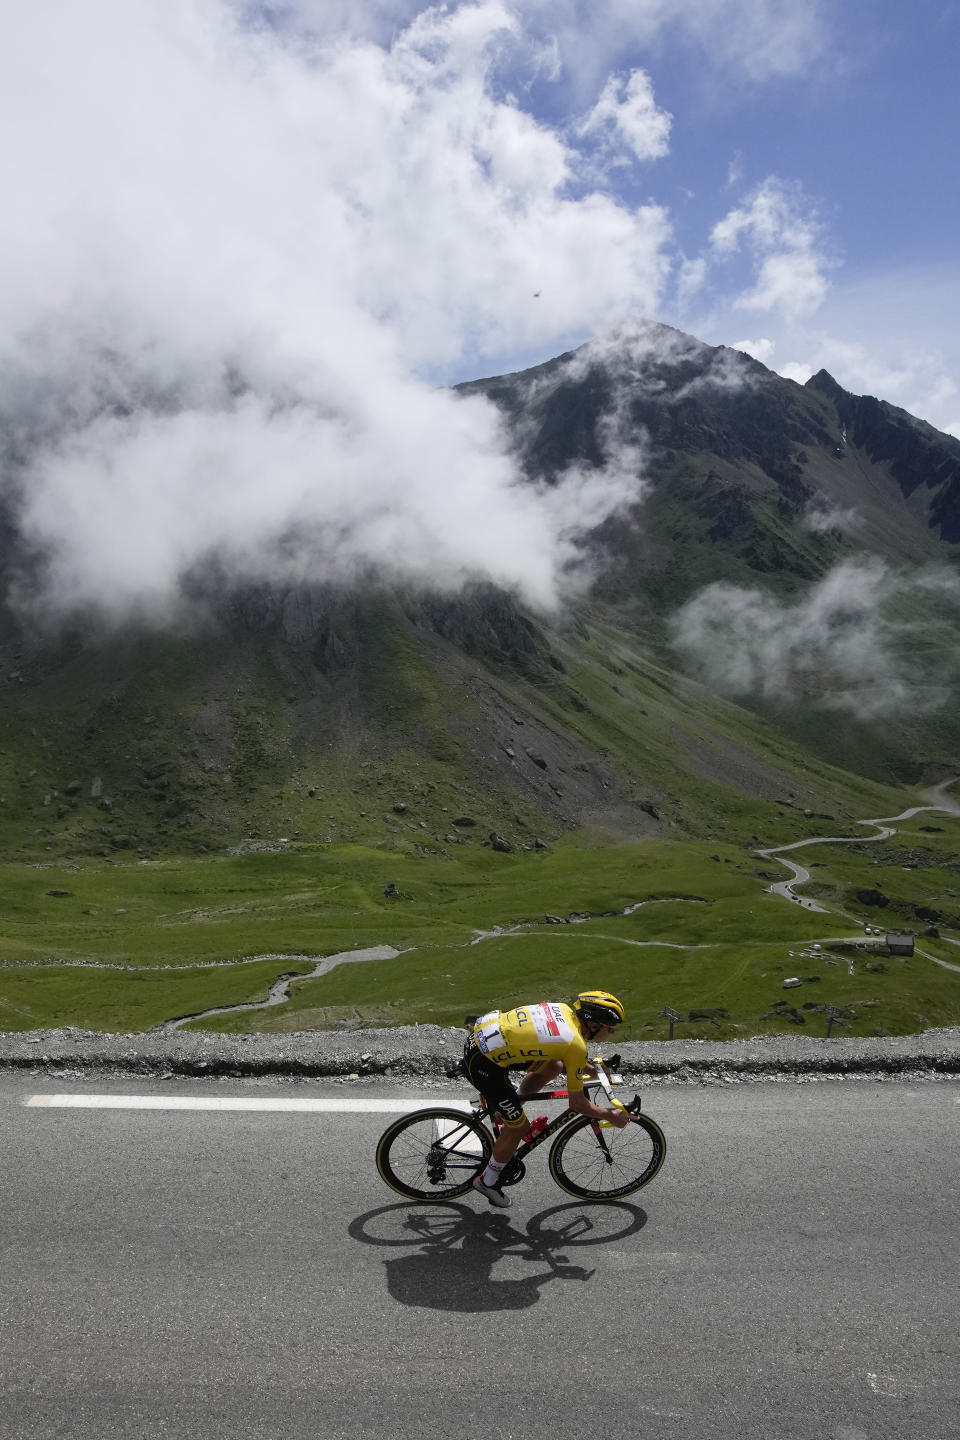 Slovenia's Tadej Pogacar, wearing the overall leader's yellow jersey, speeds down Tourmalet pass during the eighteenth stage of the Tour de France cycling race over 129.7 kilometers (80.6 miles) with start in Pau and finish in Luz Ardiden, France,Thursday, July 15, 2021. (AP Photo/Christophe Ena)